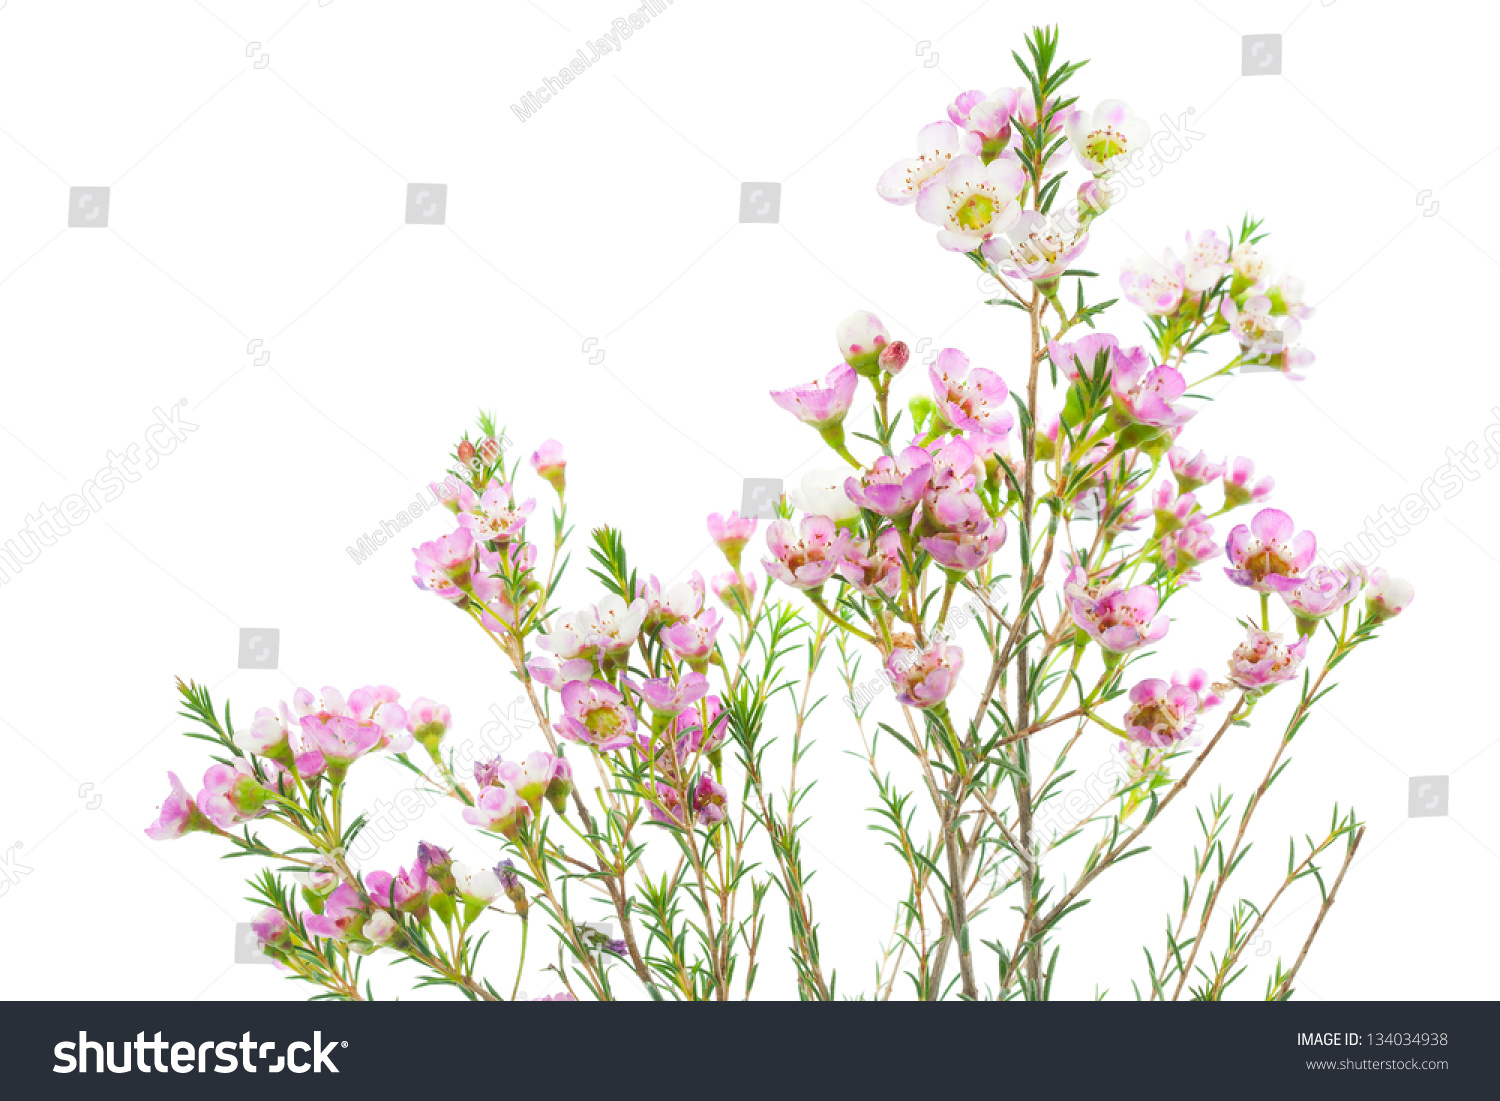 Closeup Of Waxflower Plant Isolated On White Background Ez Canvas